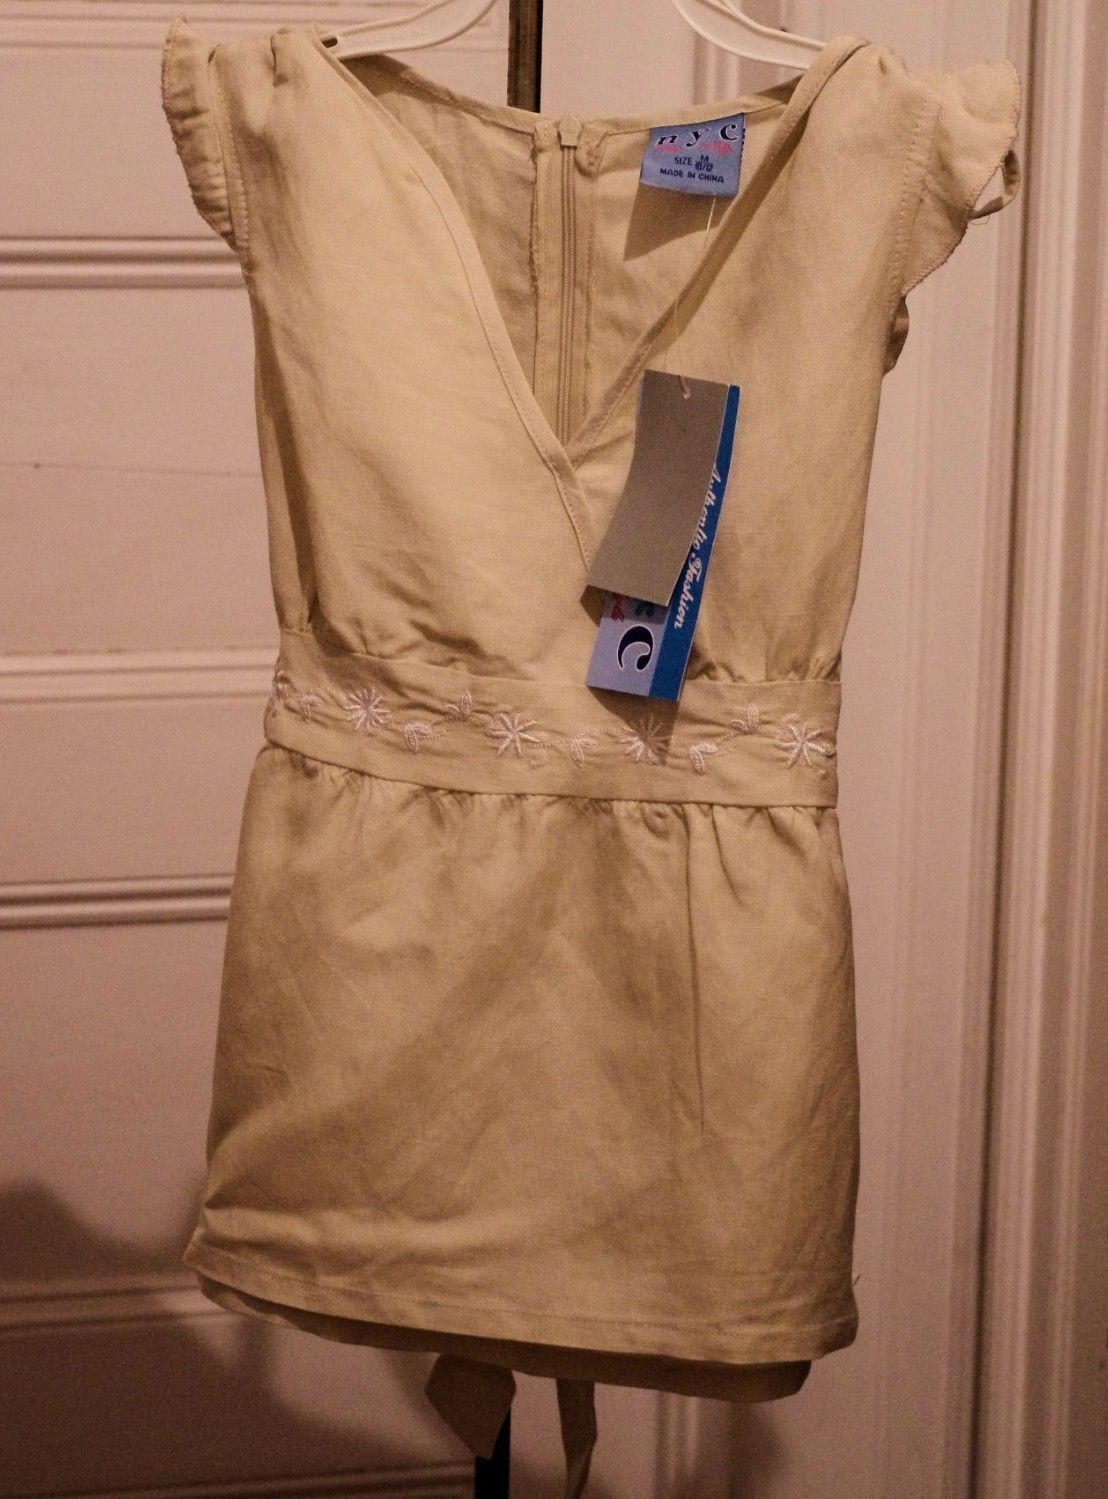 New Girls M 10/12 Top Tan Linen Blend Embroidered Tie Back Babydoll NWT